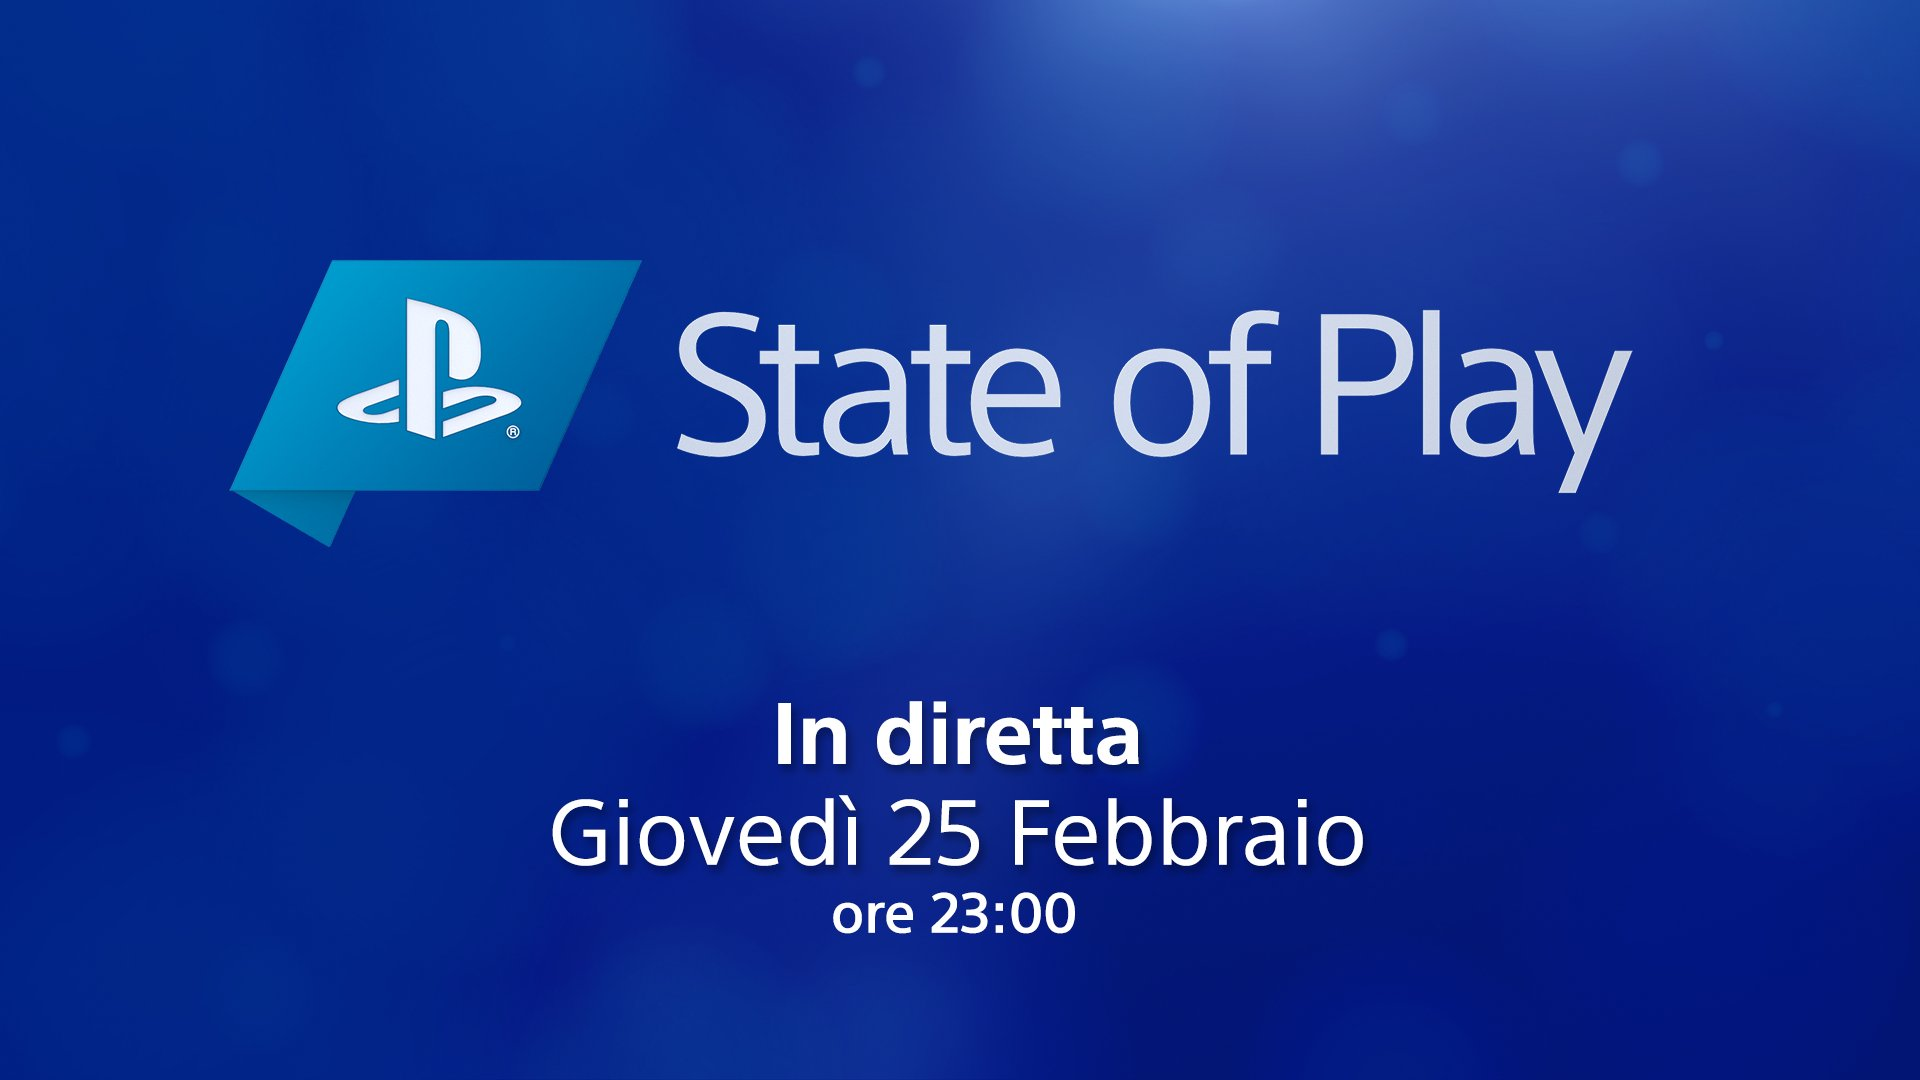 State of play ps5